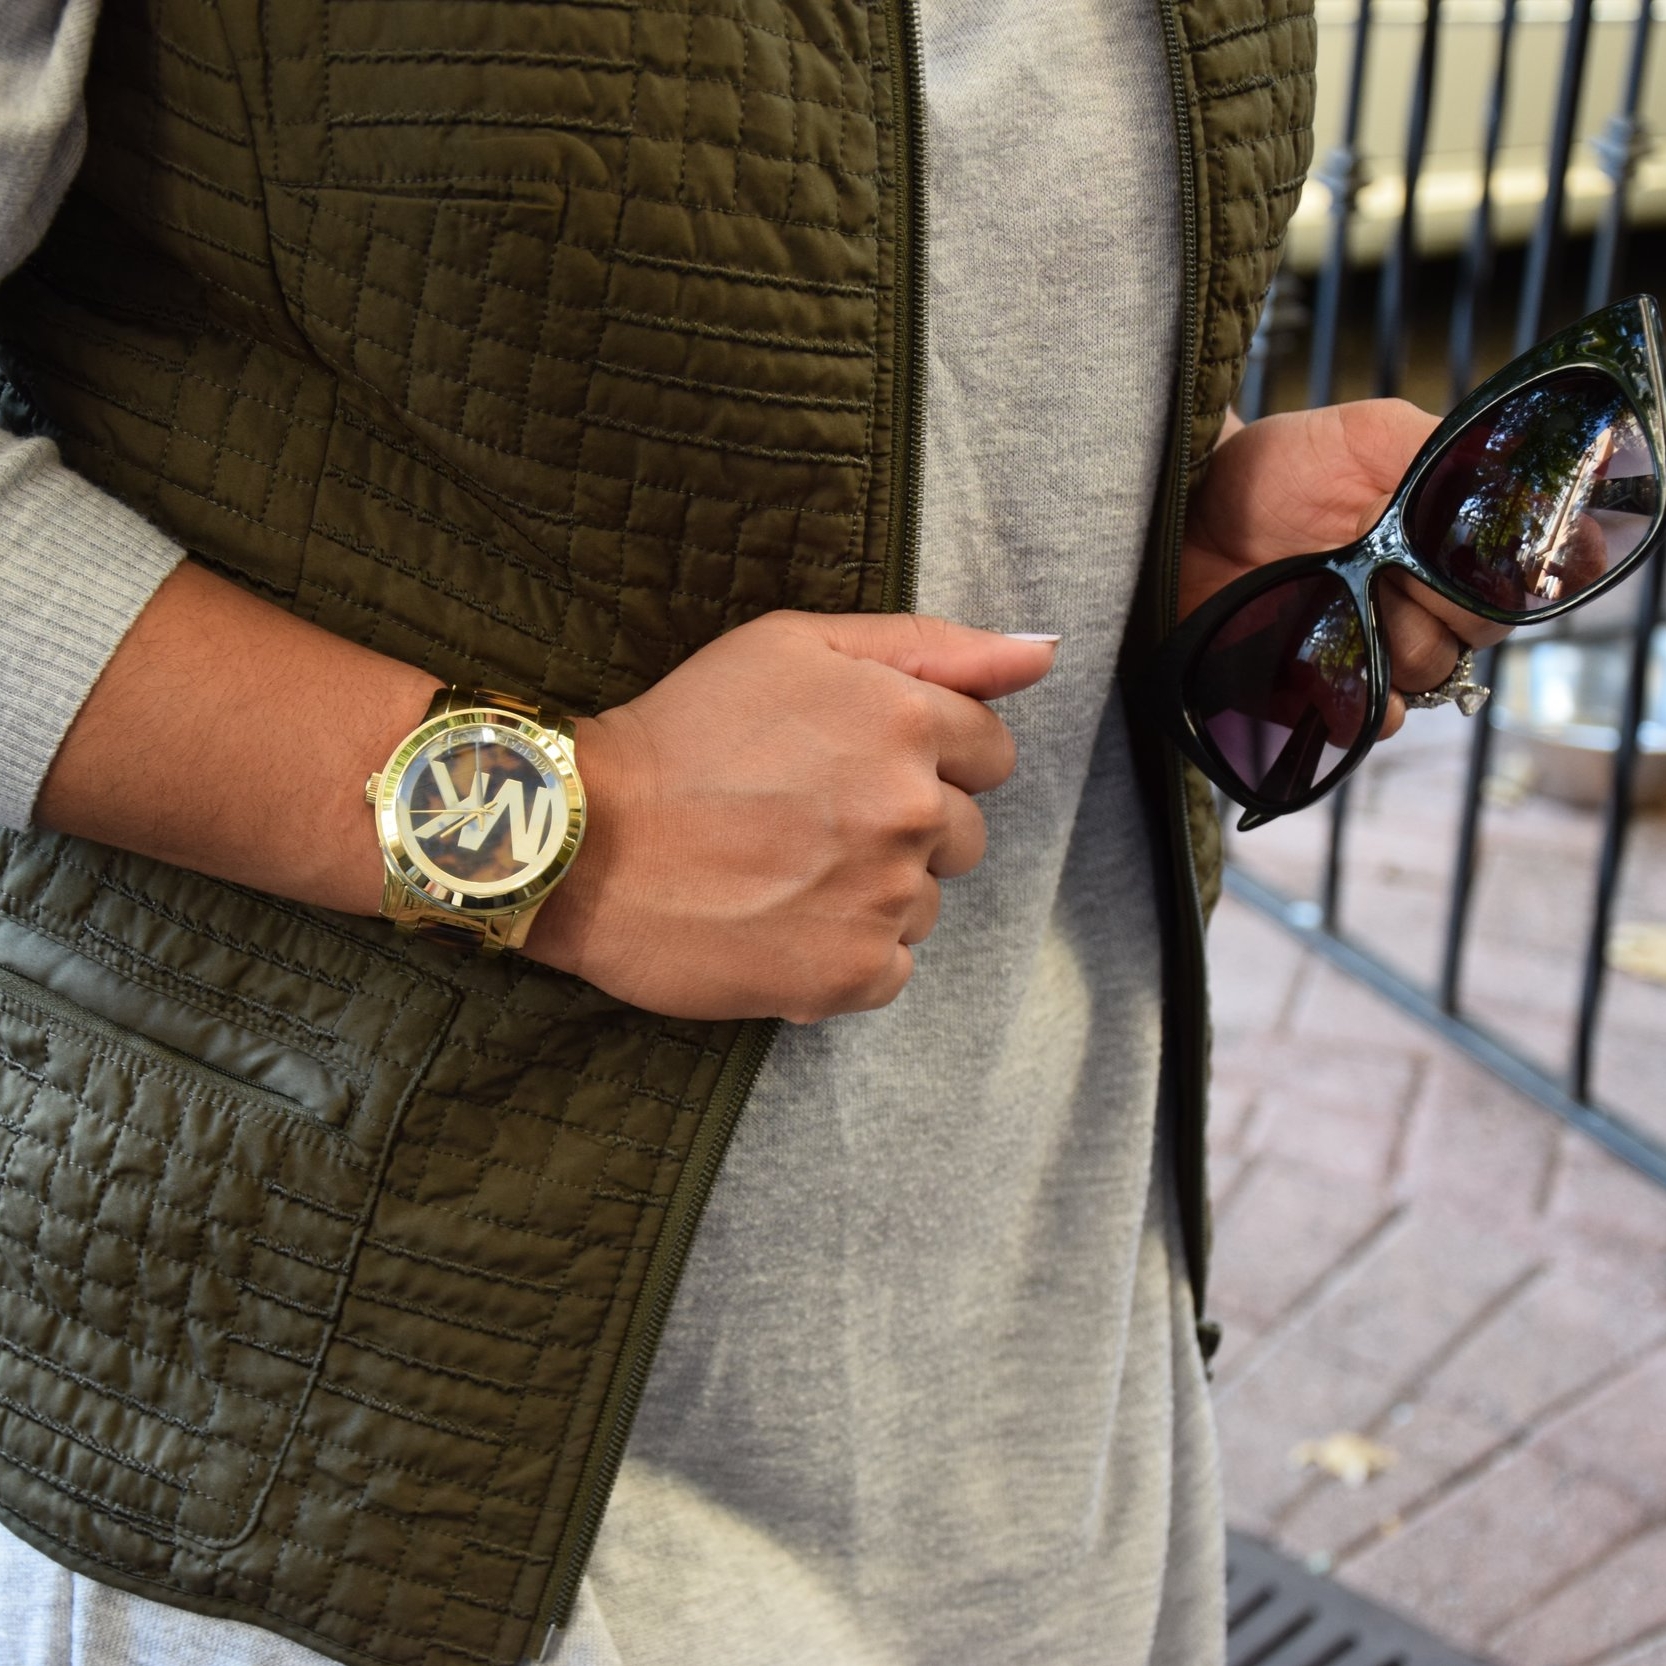 I love gold, so I added a gold and animal print MK watch as an accent to the army green vest and my bare forearms.